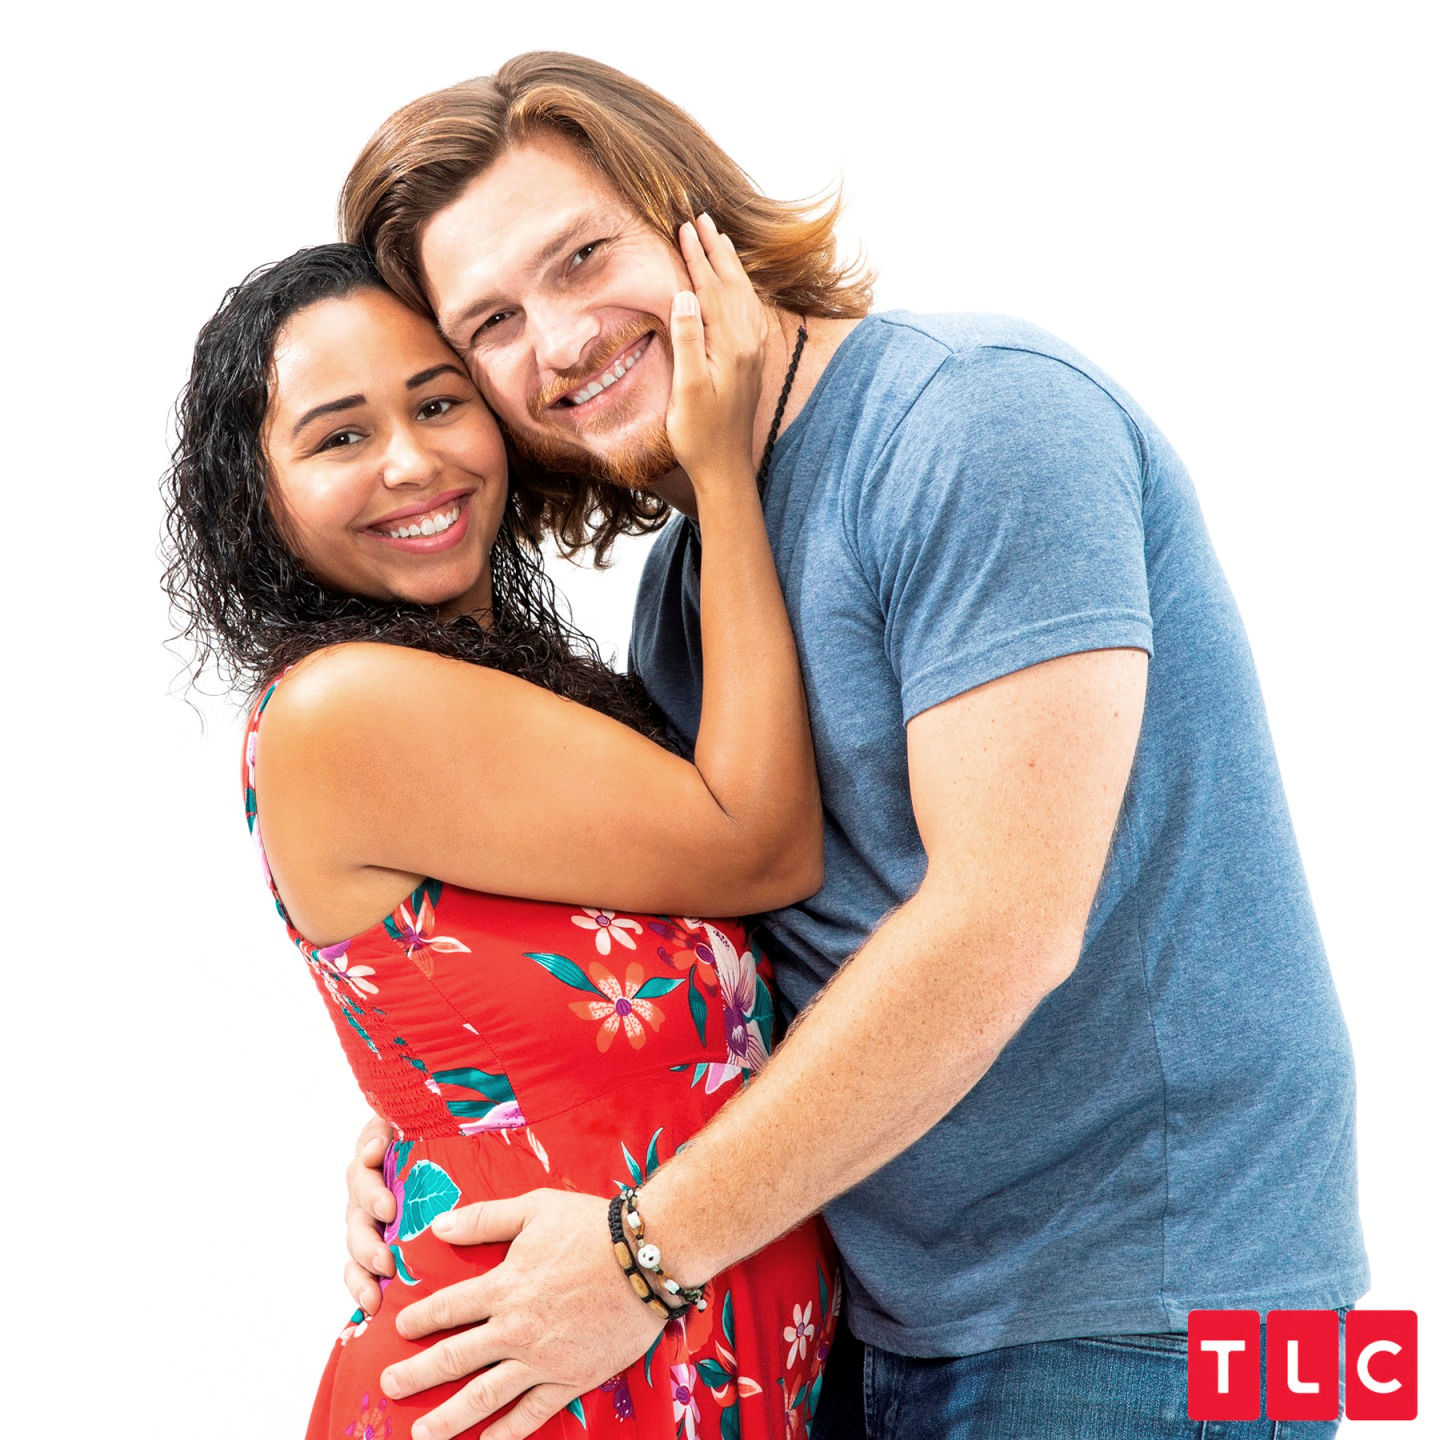 90 Day Fiance Season 7 Cast Tania and Syngin